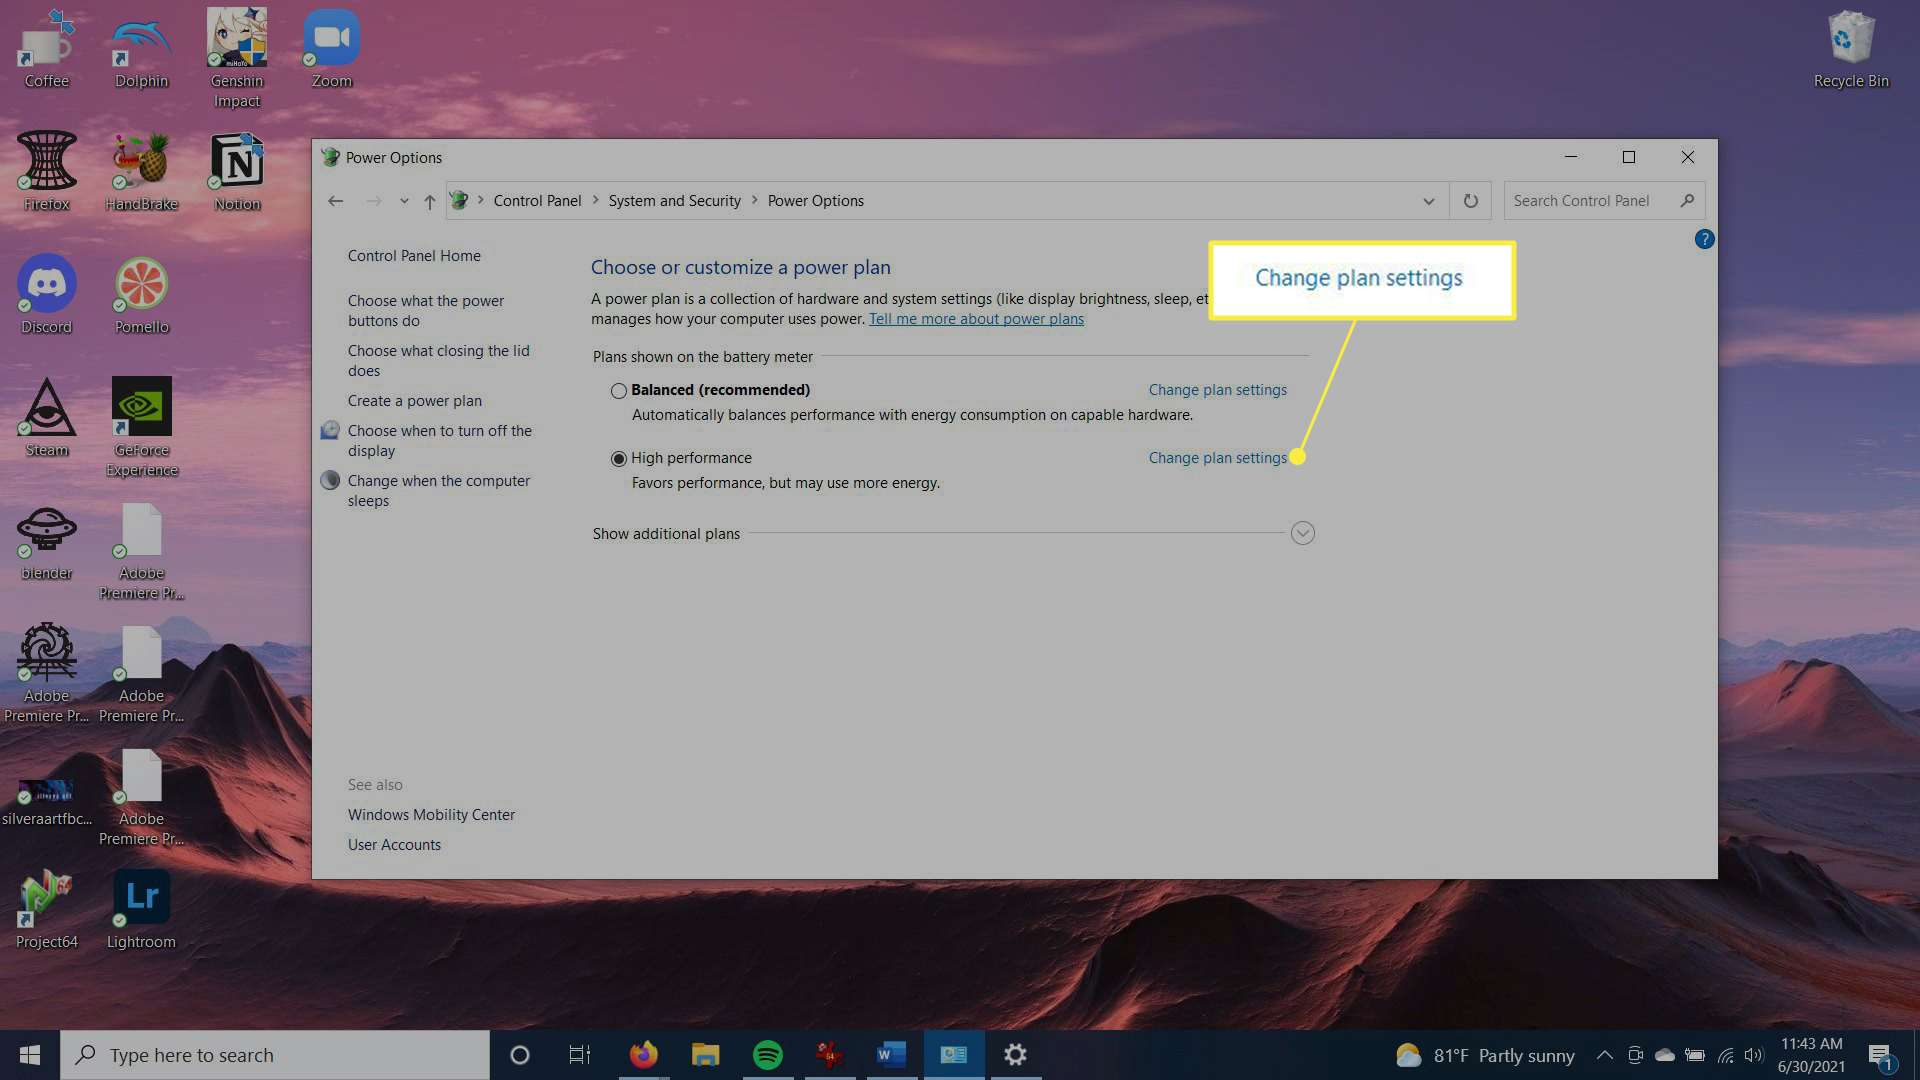 Power plan settings with an option to change plan settings